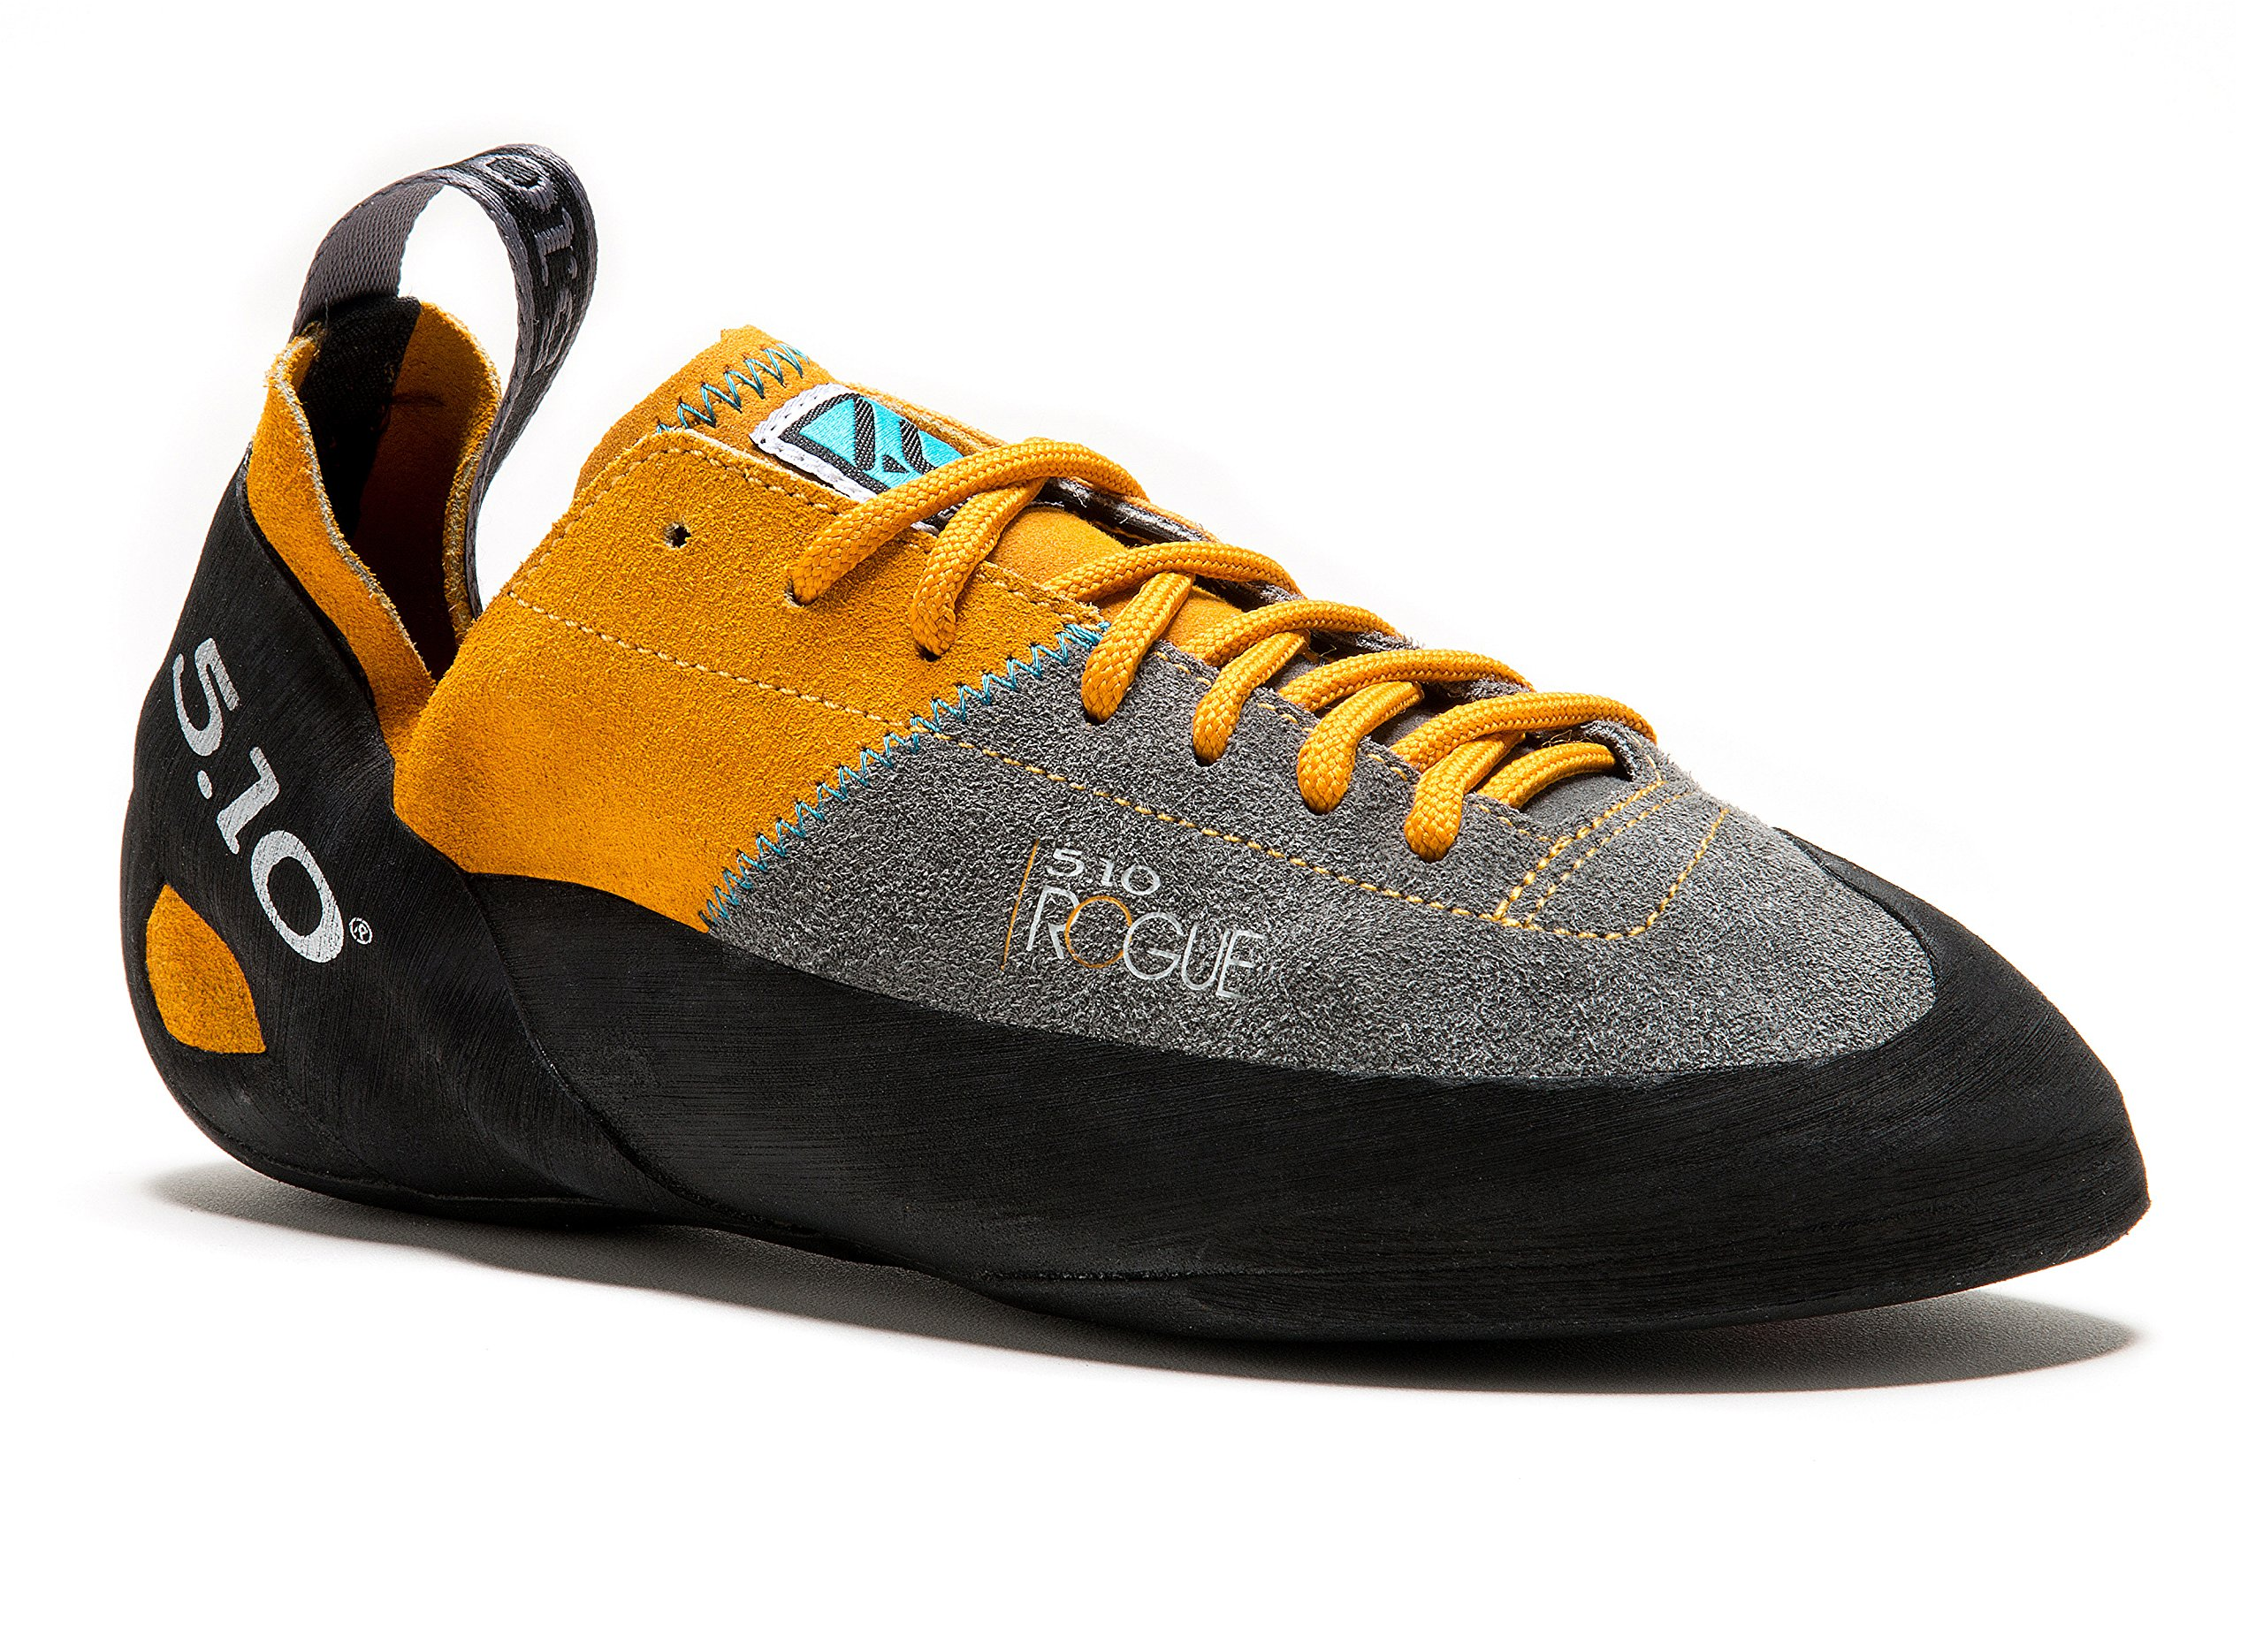 Five Ten Women's Rogue Lace-up Climbing Shoe, Zinnia/Charcoal, 7.5 M US